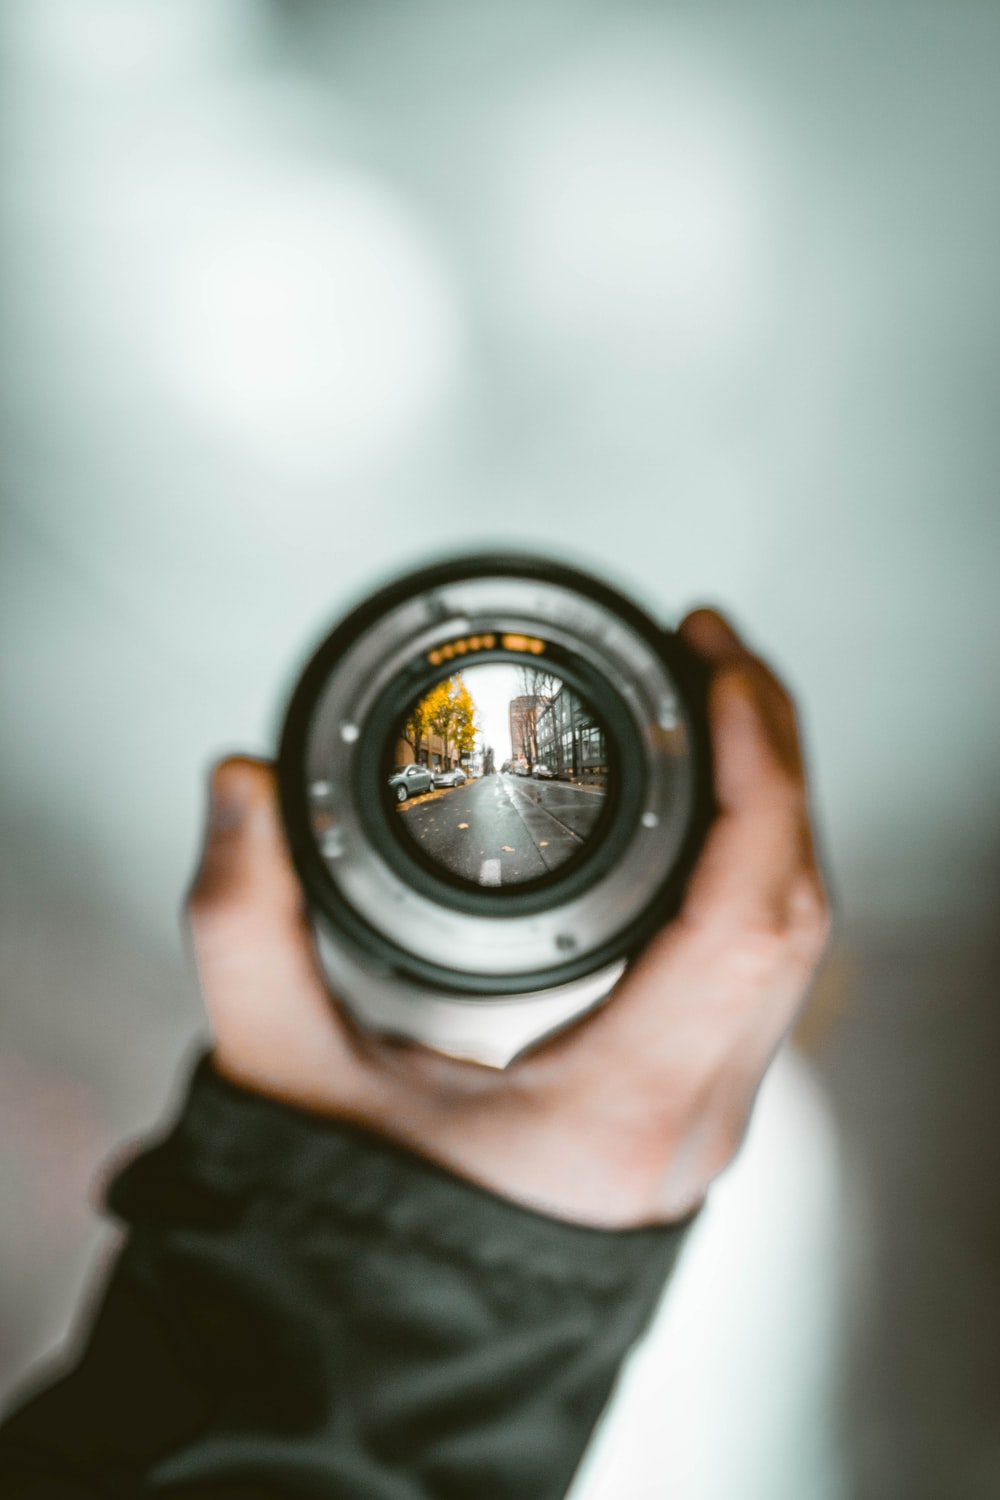 Camera Focus Pictures Download Free Images On Unsplash Hd wallpaper photo hand lens focus